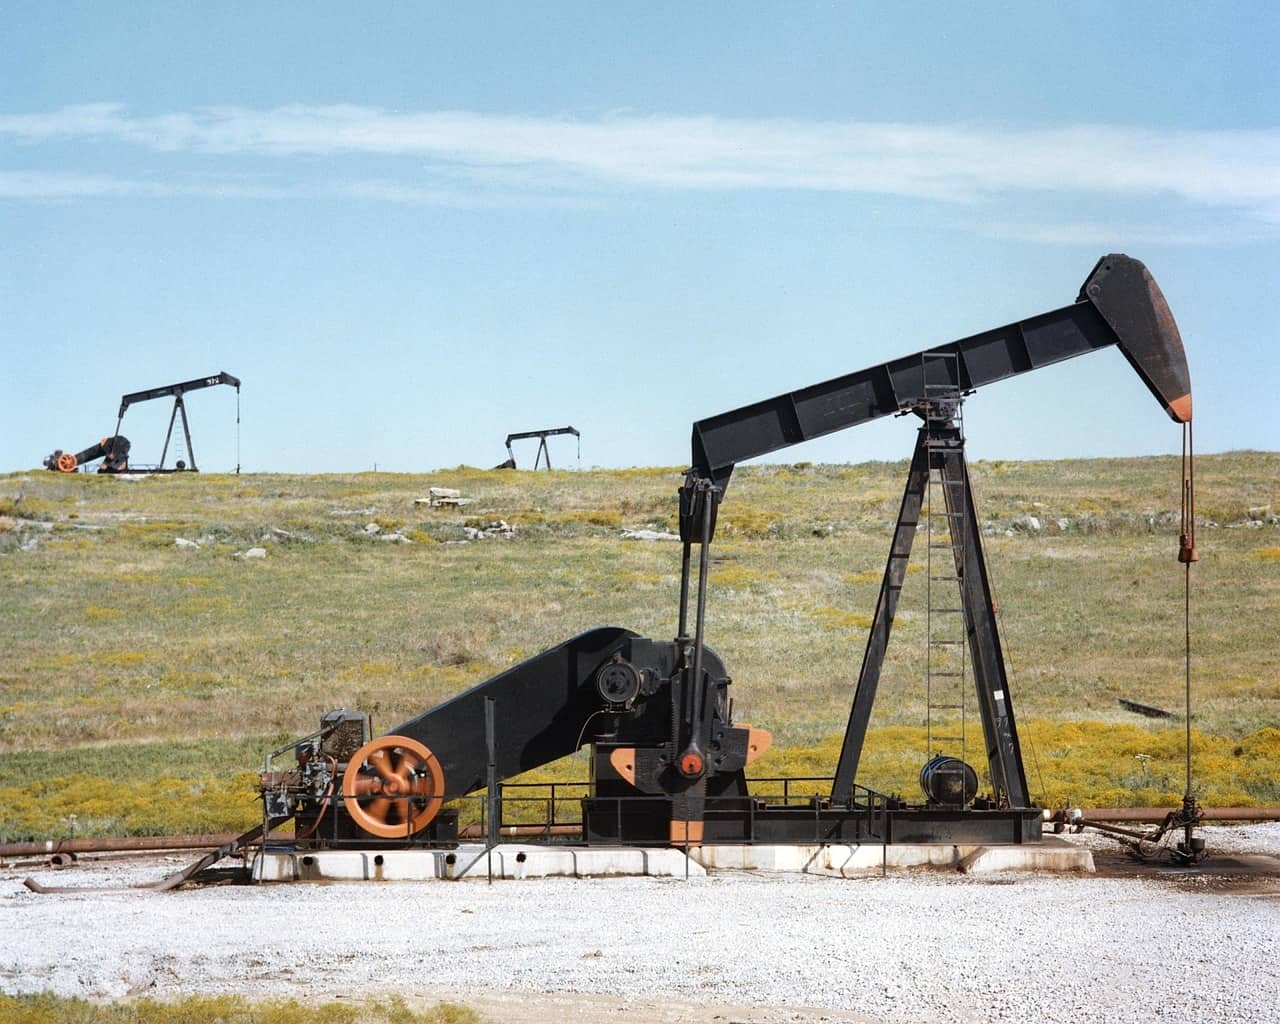 Texas Anti-slapp and oil and gas